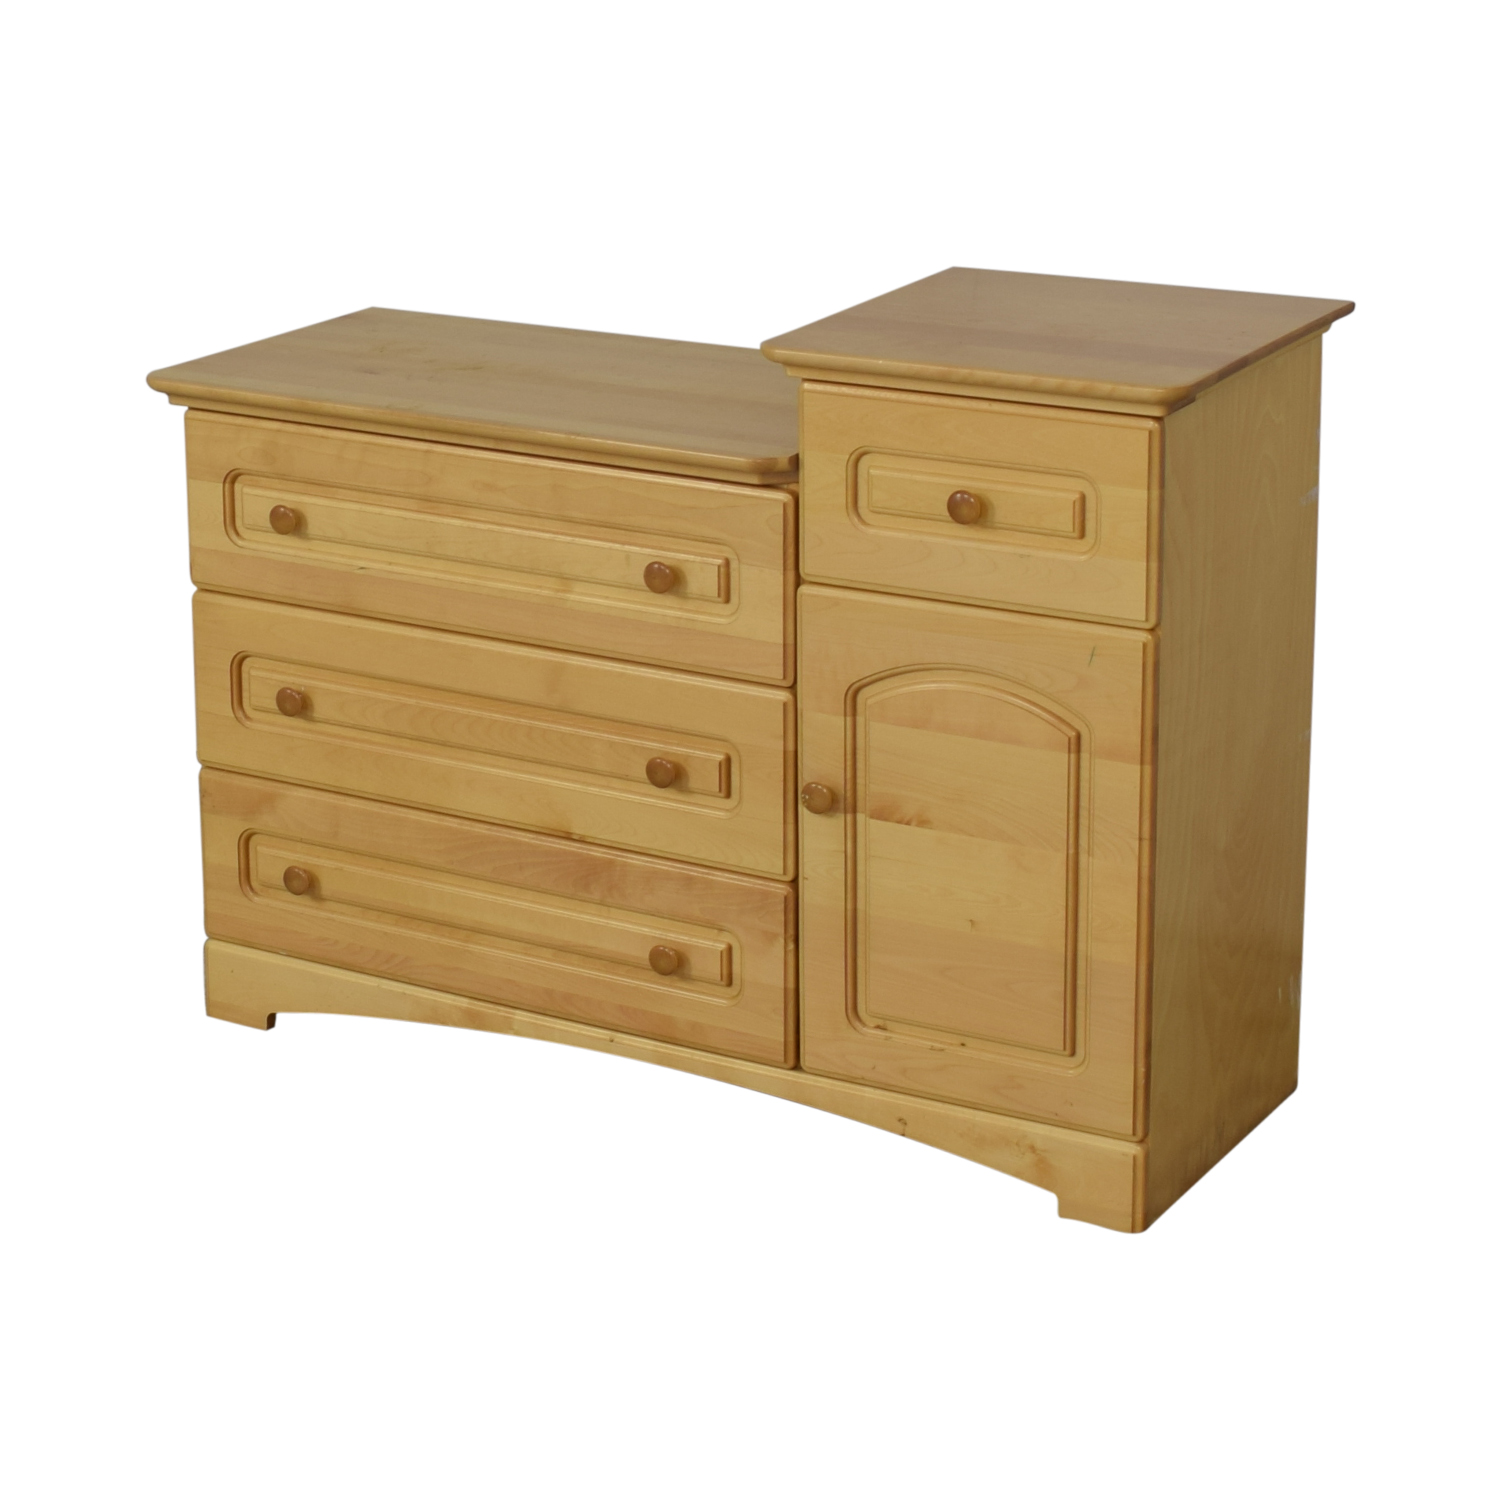 Pali Pali Changing Table for sale